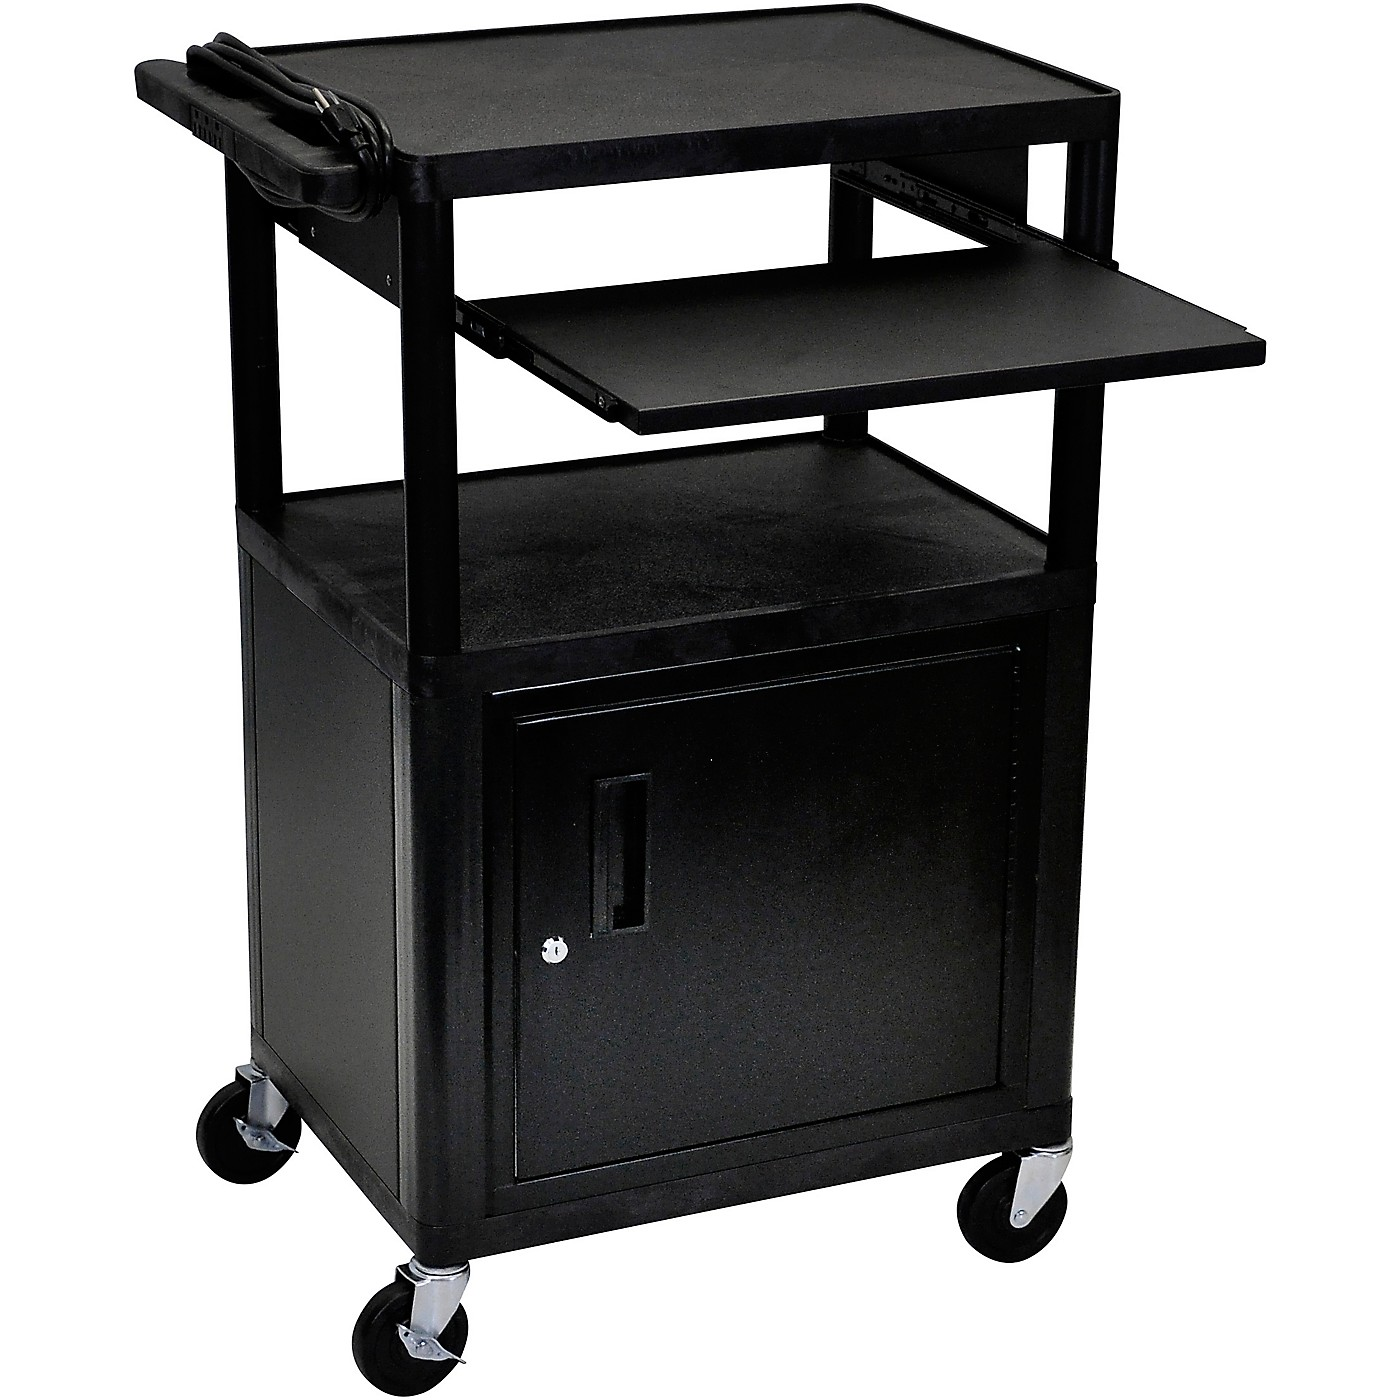 H. Wilson Plastic Cart with Pullout Keyboard Tray thumbnail